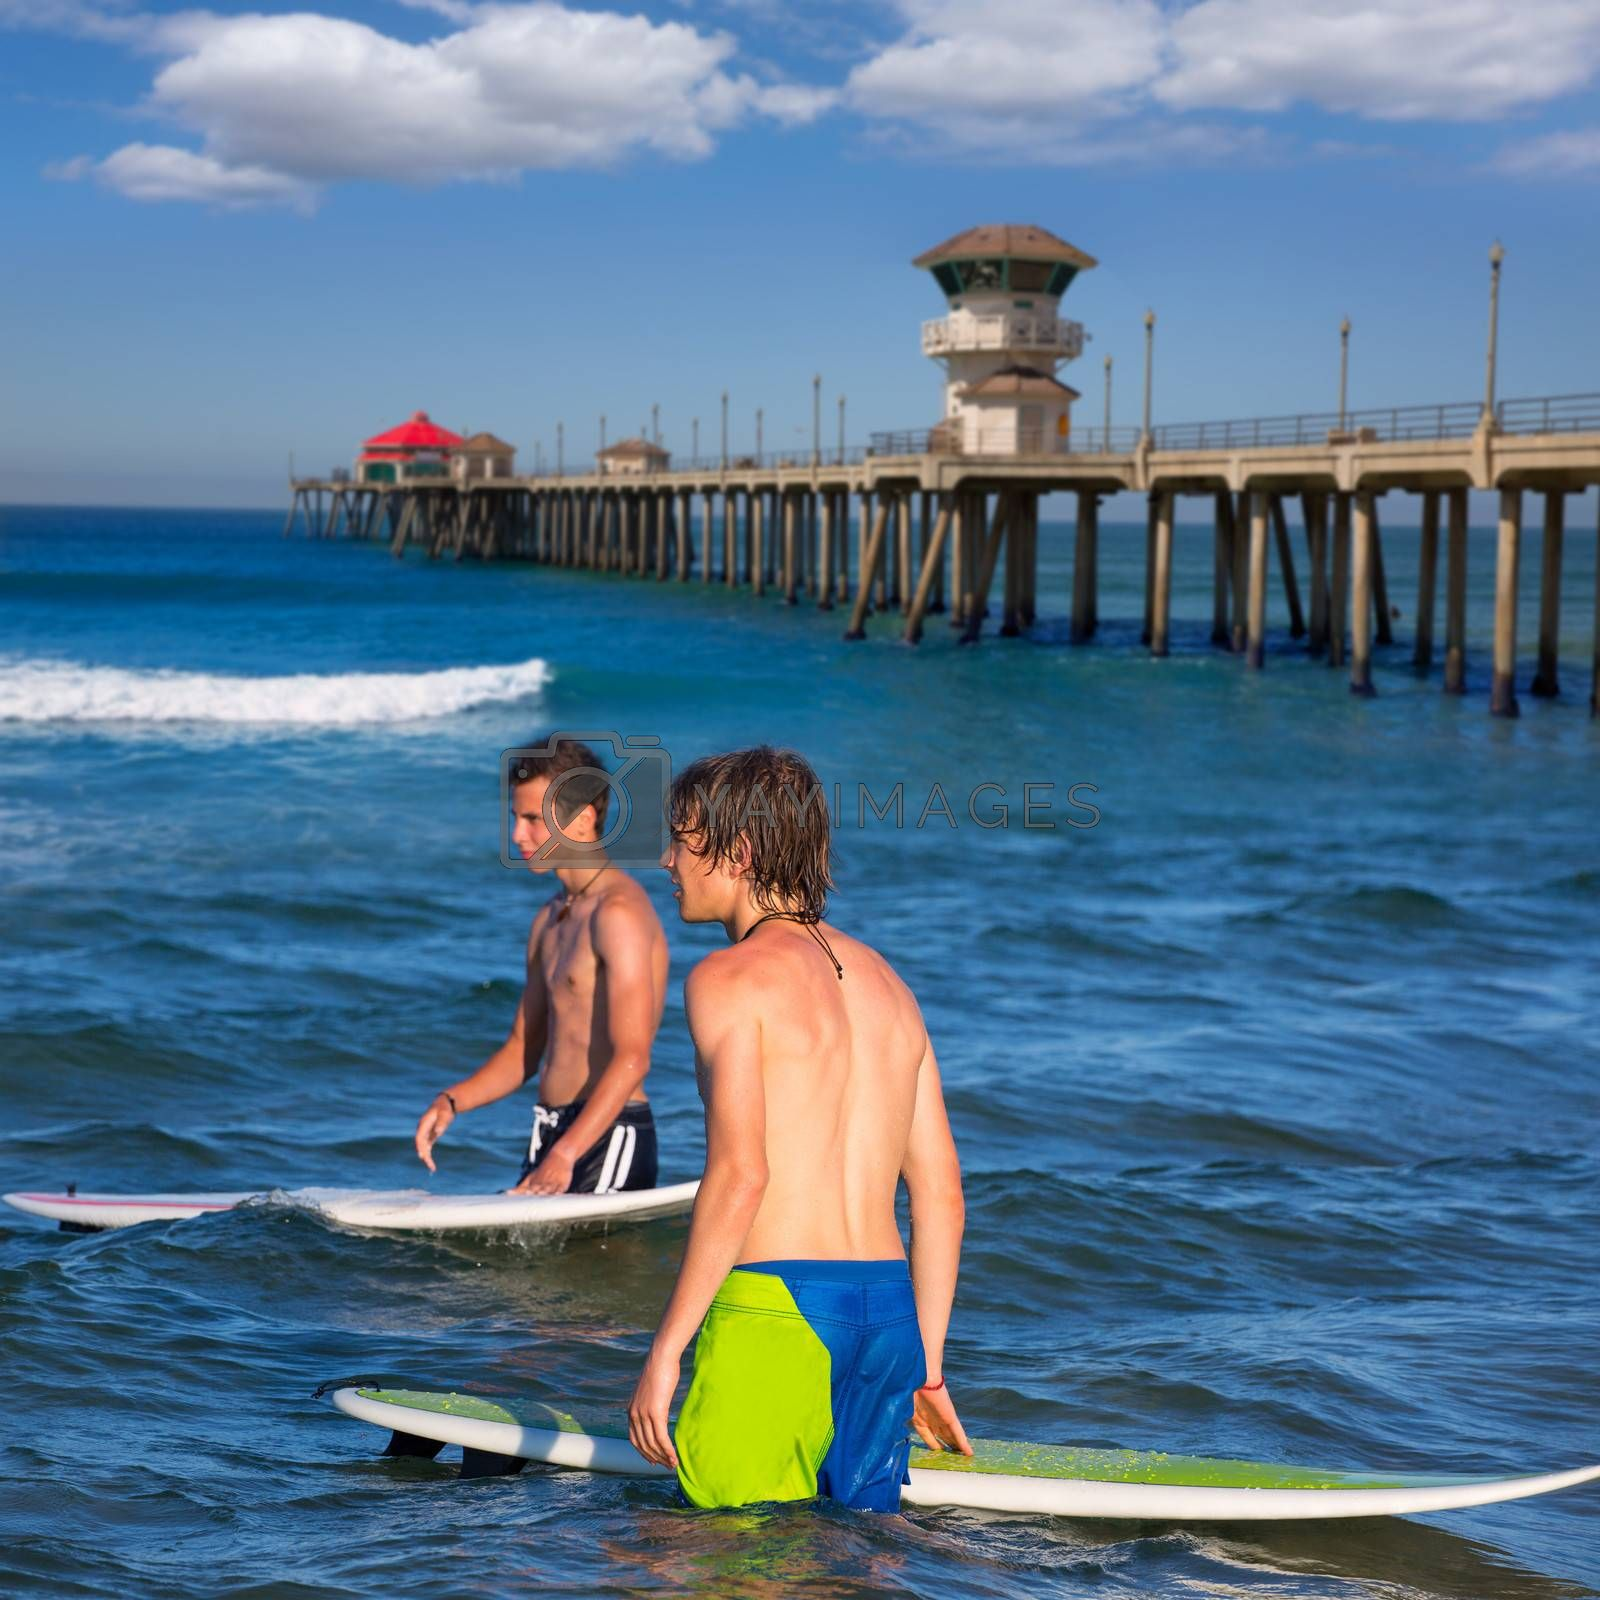 surfers waiting for the waves on Huntington beach pier California